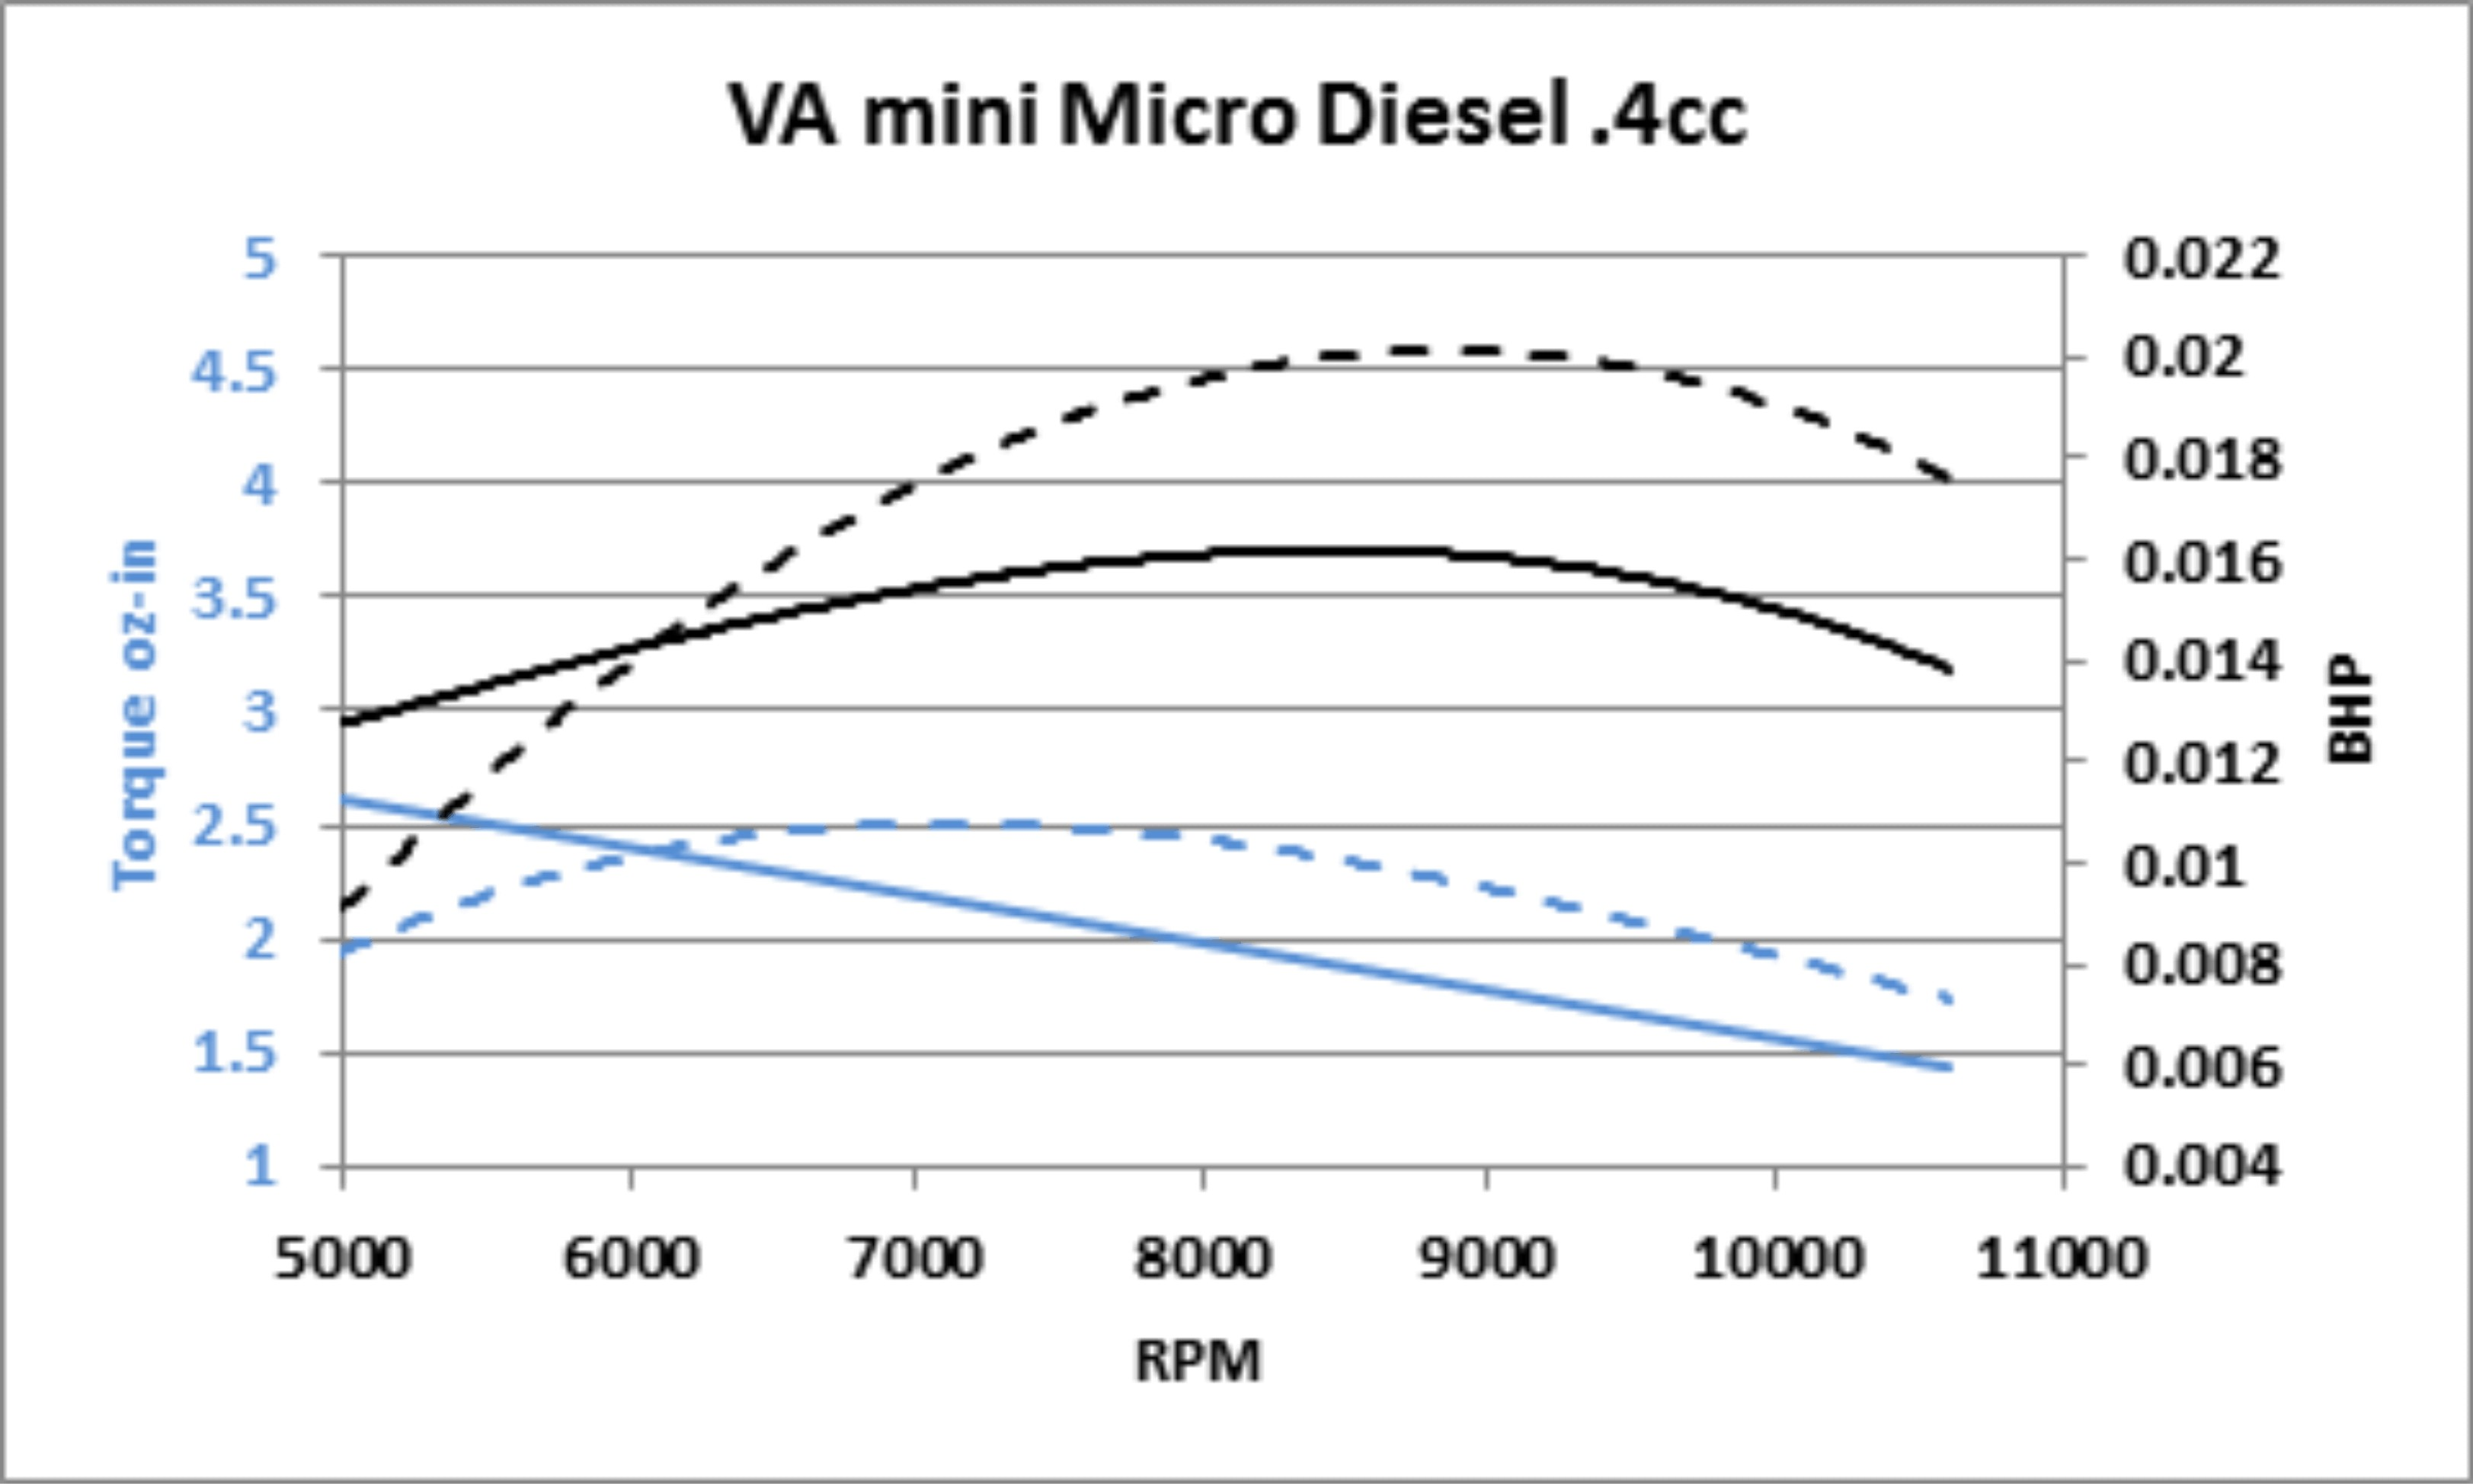 Port Timing Diagram Of Diesel Engine Adriansmodelaeroengines Va Mini Micro Diesel